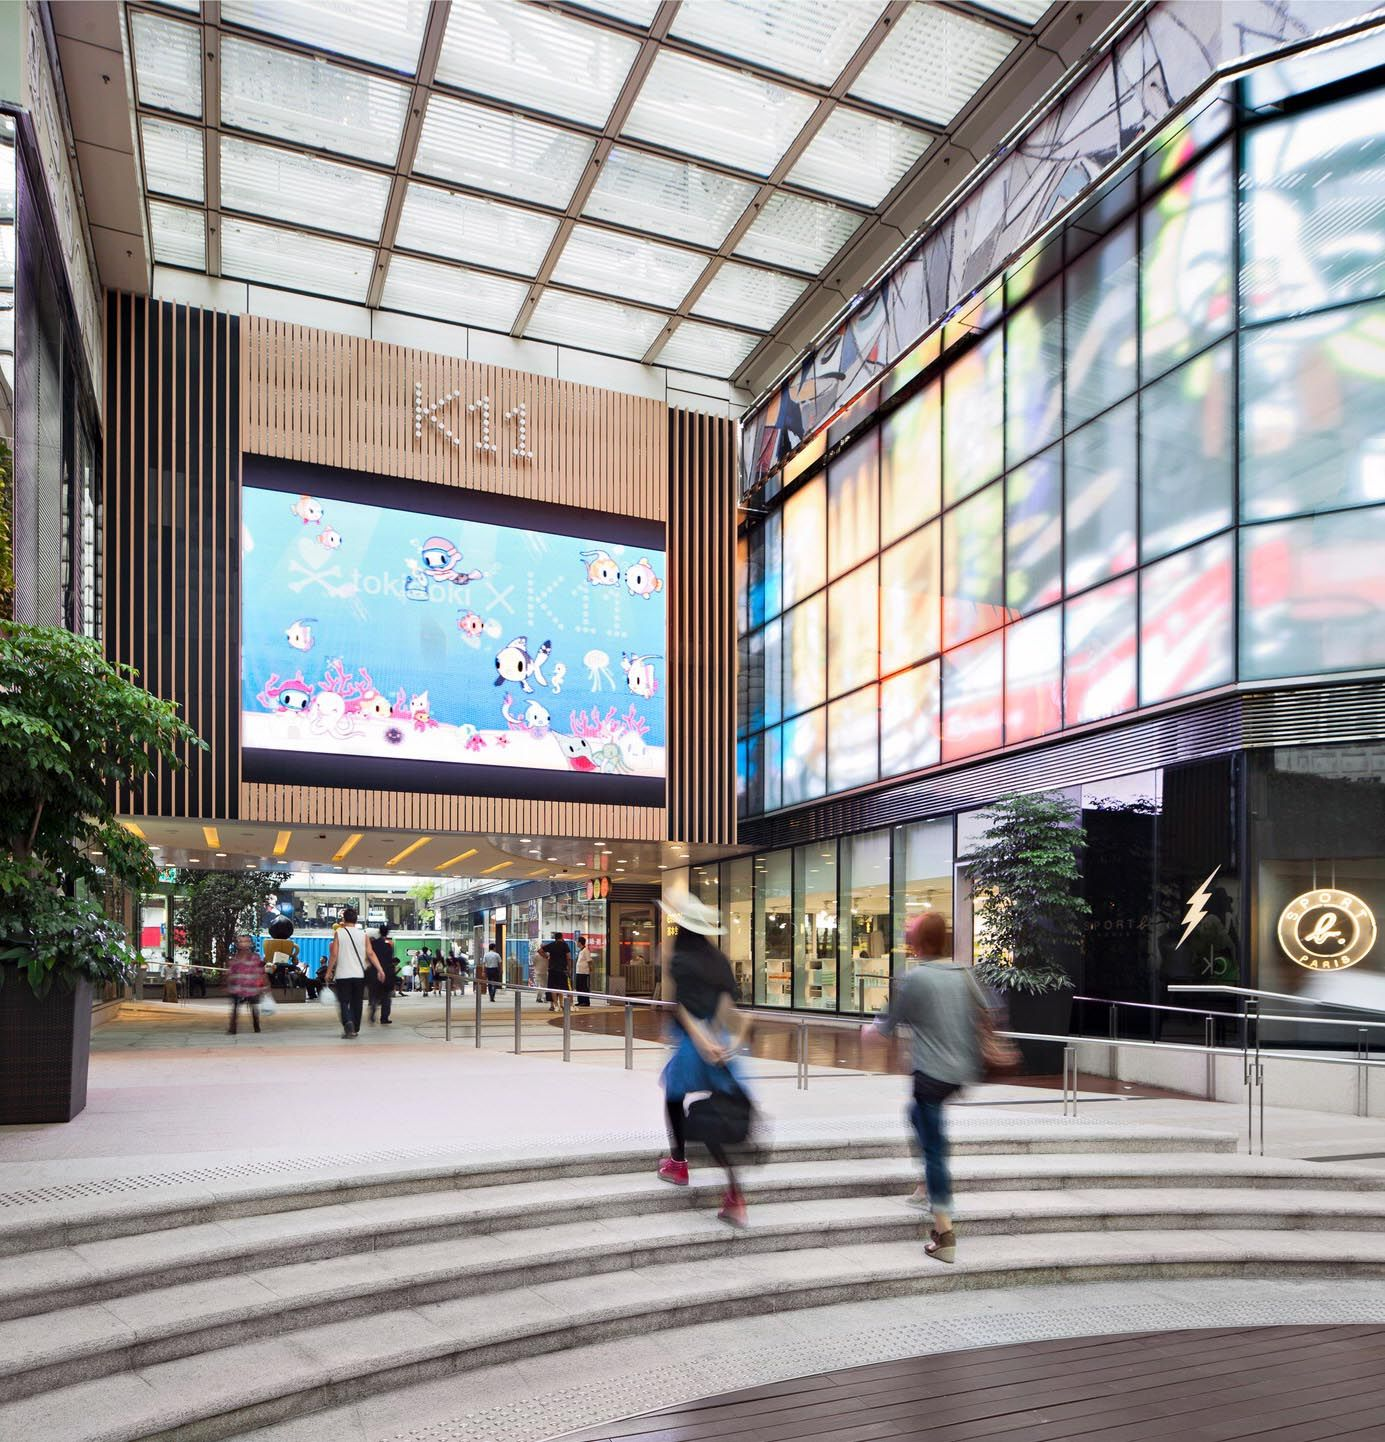 K11 Retail Complex Hong Kong As Part Of An Iconic 60 Story Mixed Use Development The K11 Retail Complex Is Drawing New Brands To Hong Kong